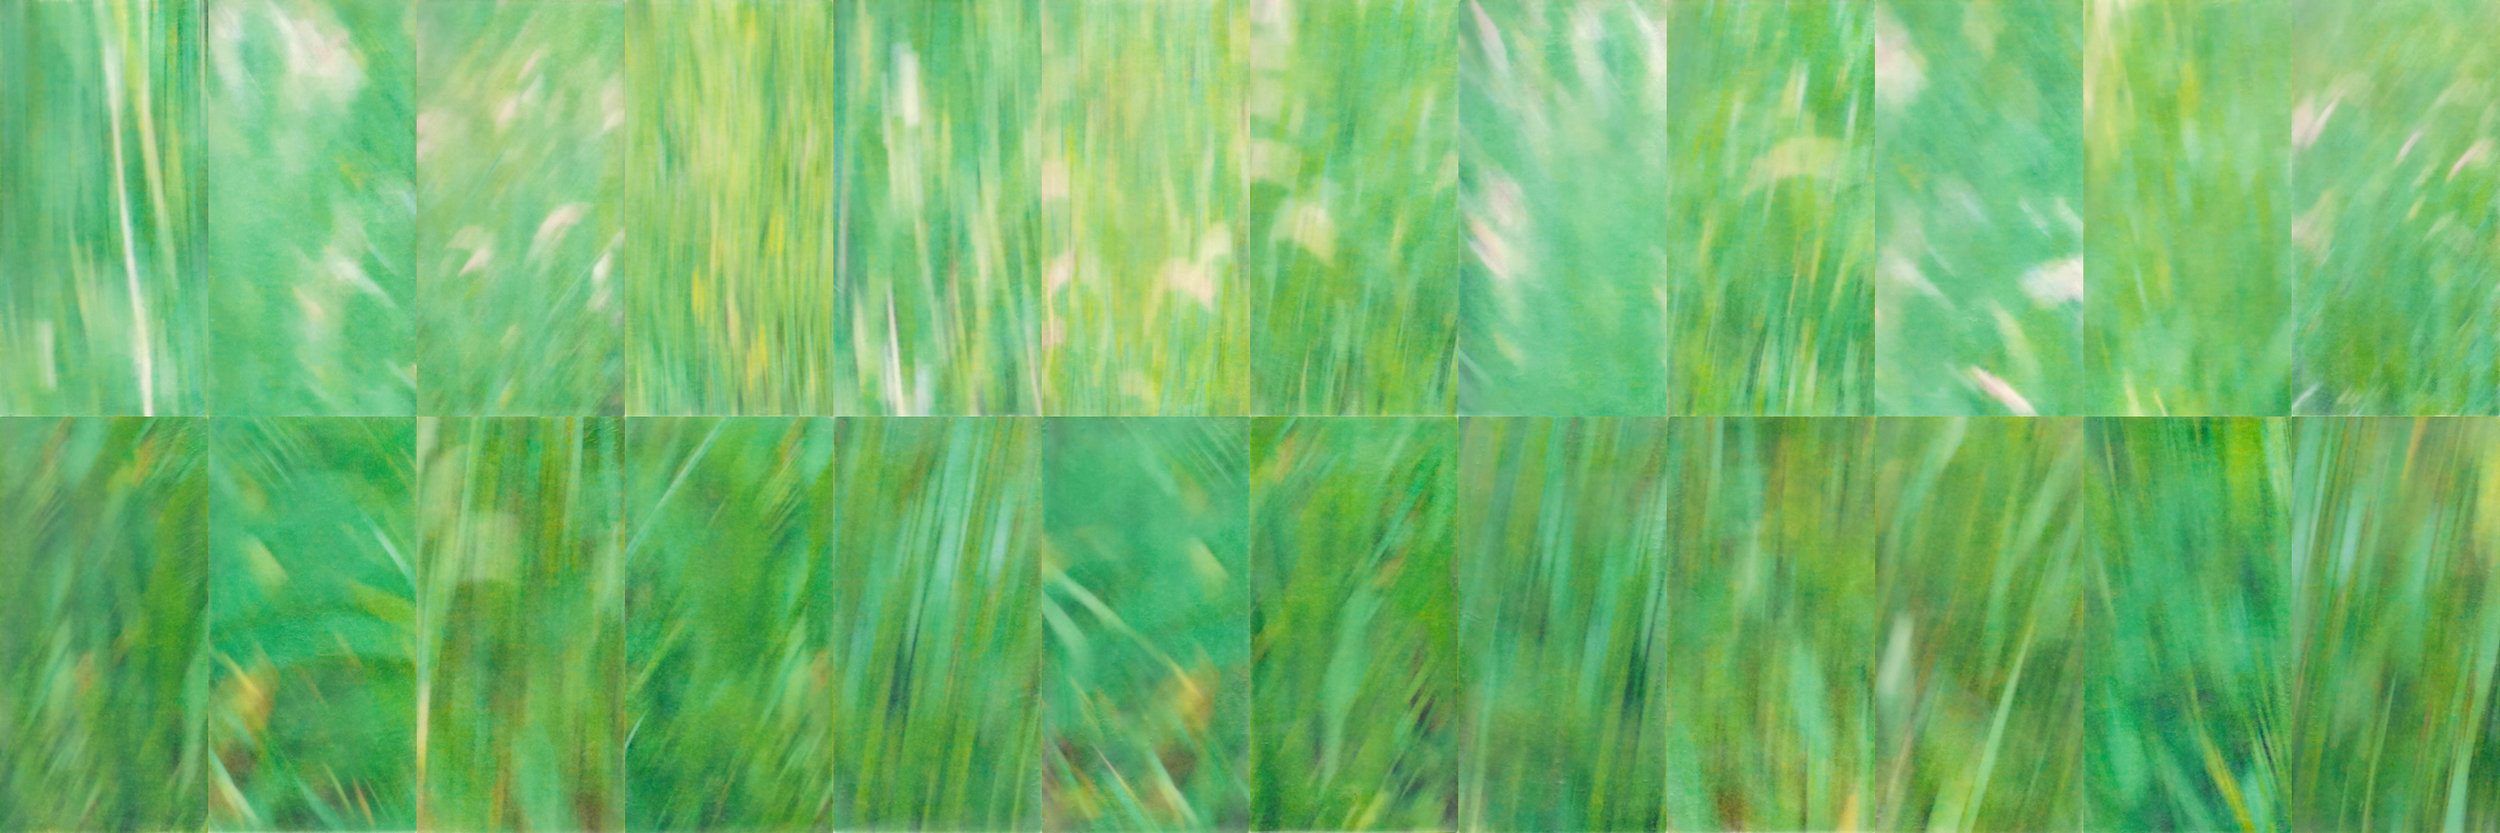 Meander by Erin Keane : photography with encaustic beeswax : 16 x 48 inches, framed